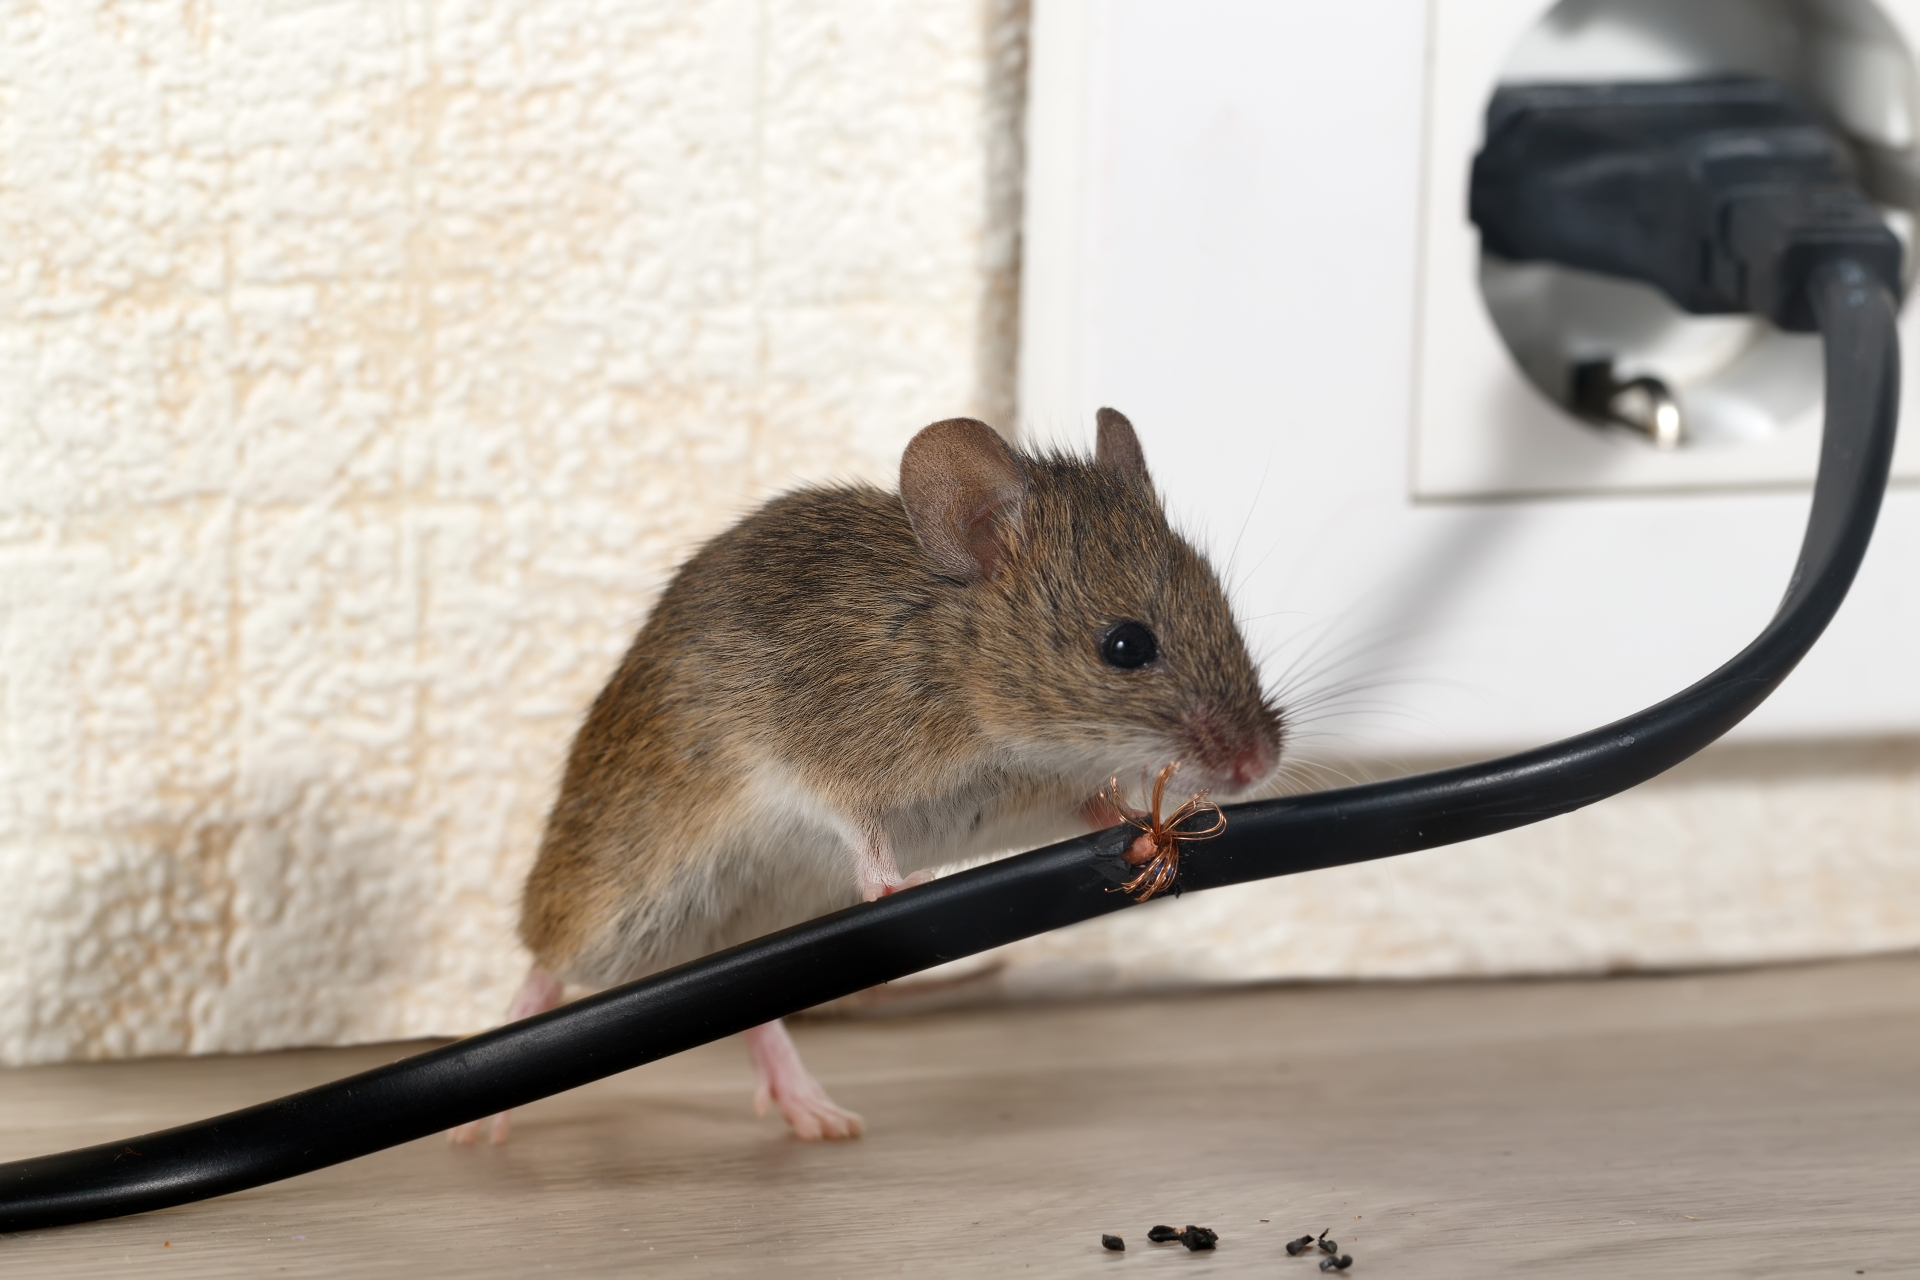 Mice Infestation, Pest Control in Hillingdon, Ickenham, UB10. Call Now 020 8166 9746